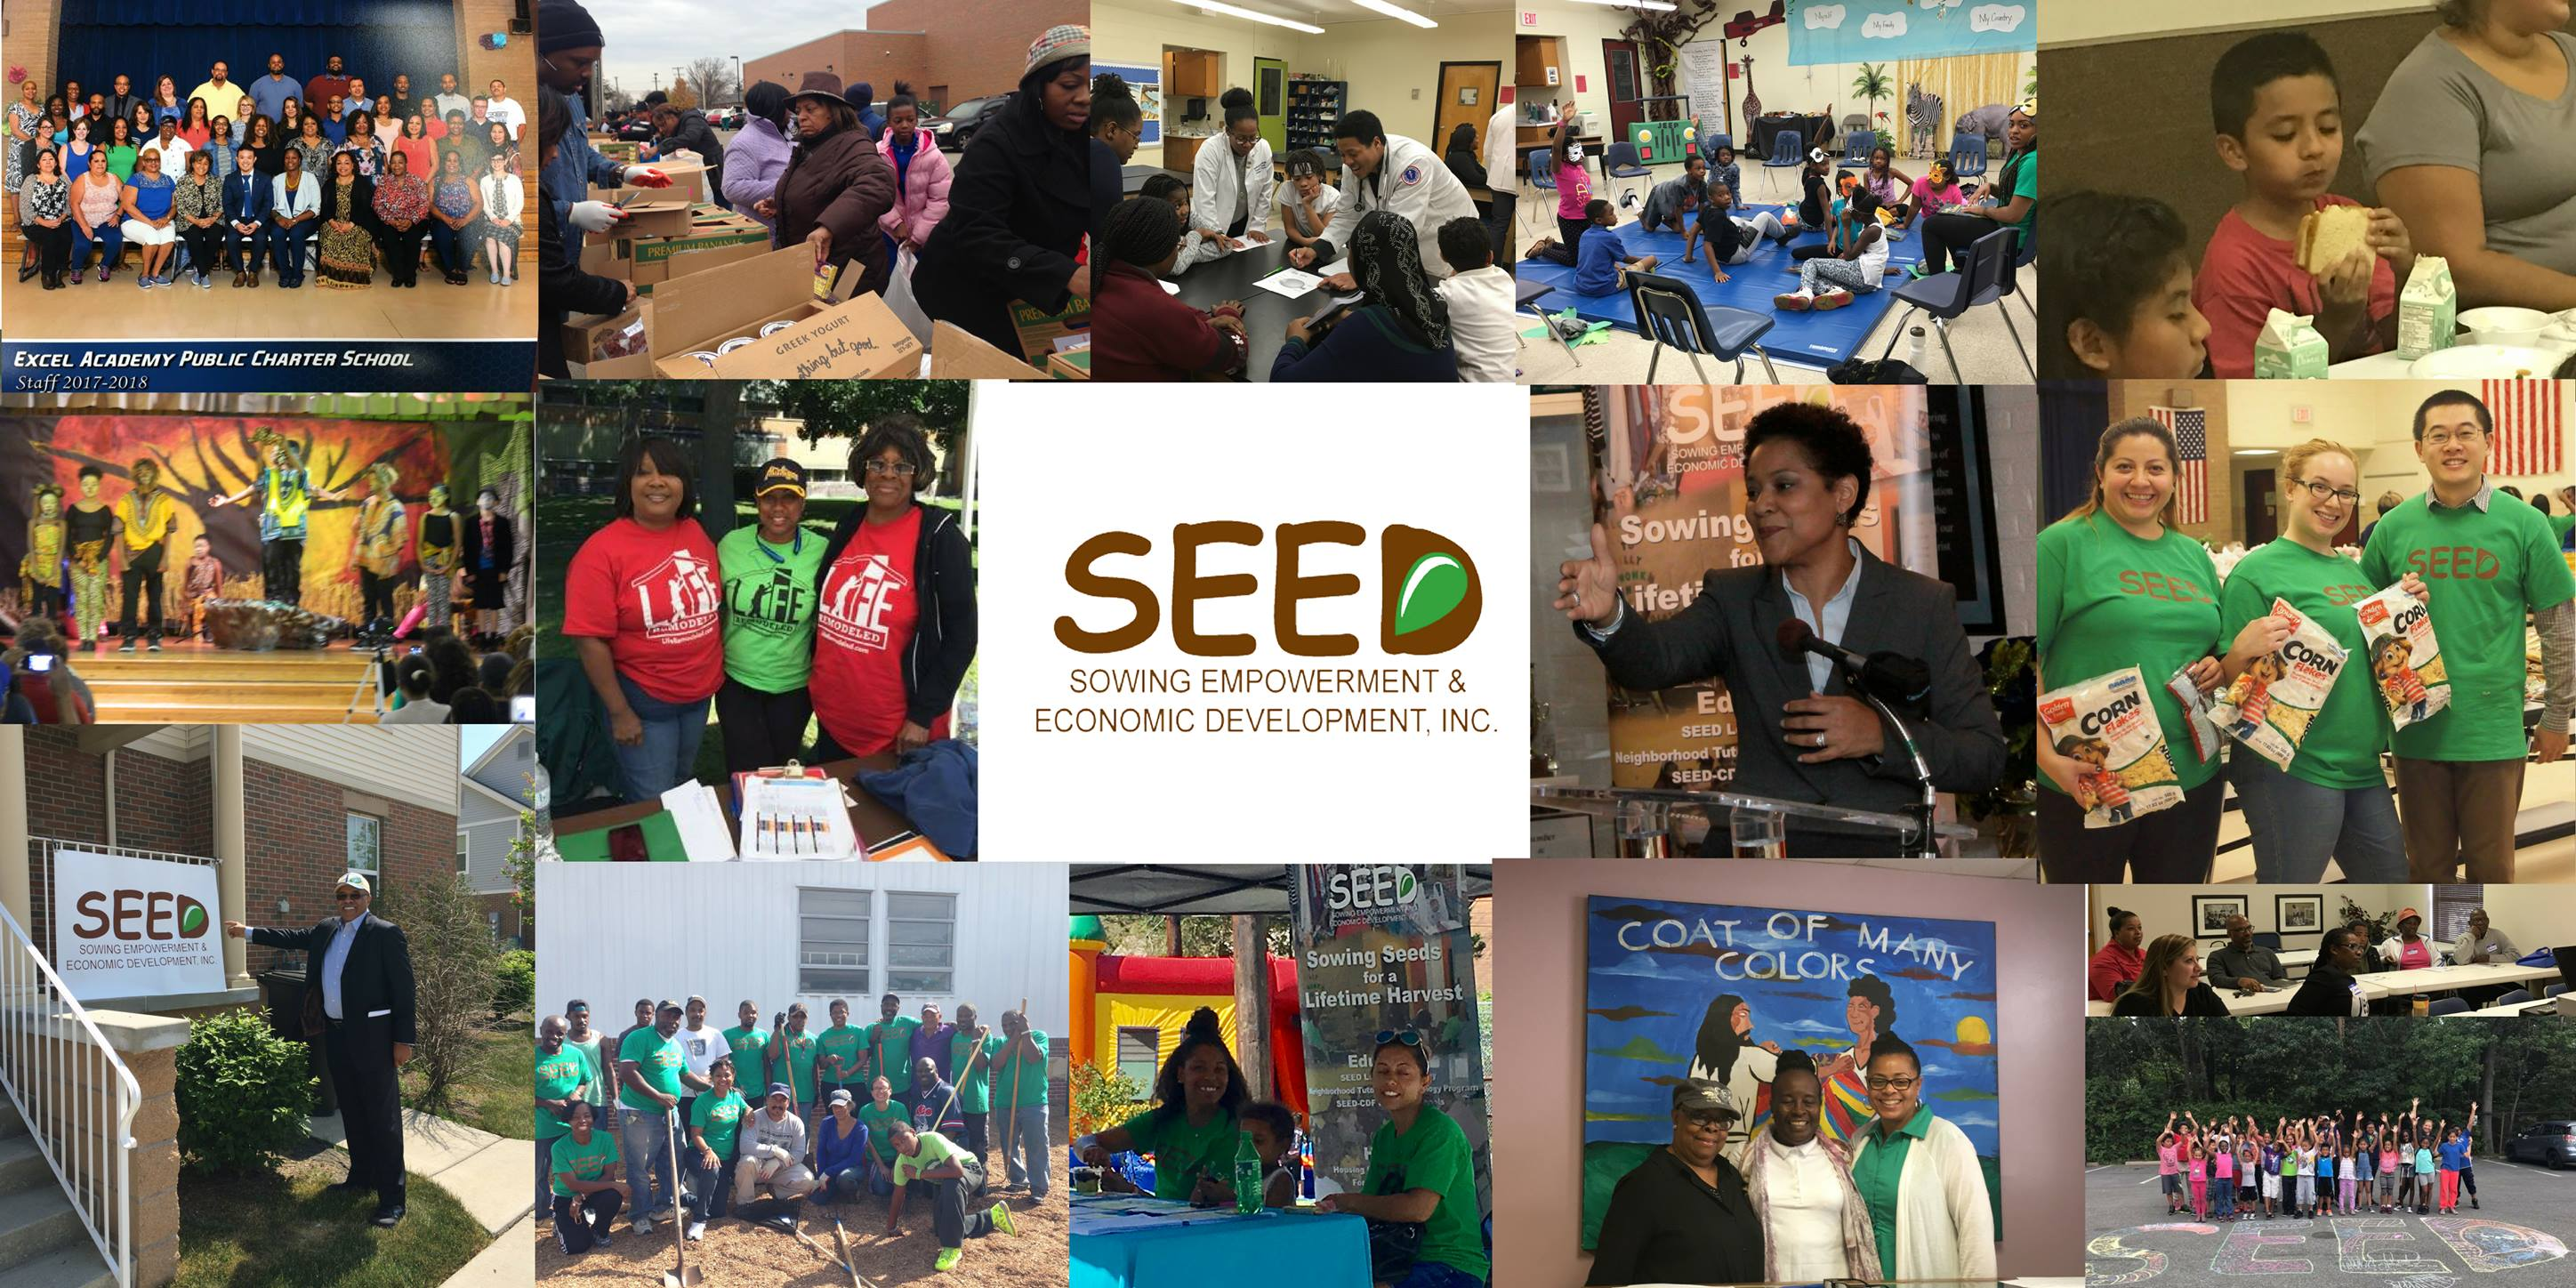 SEED - Sowing Empowerment & Economic Development, INC.